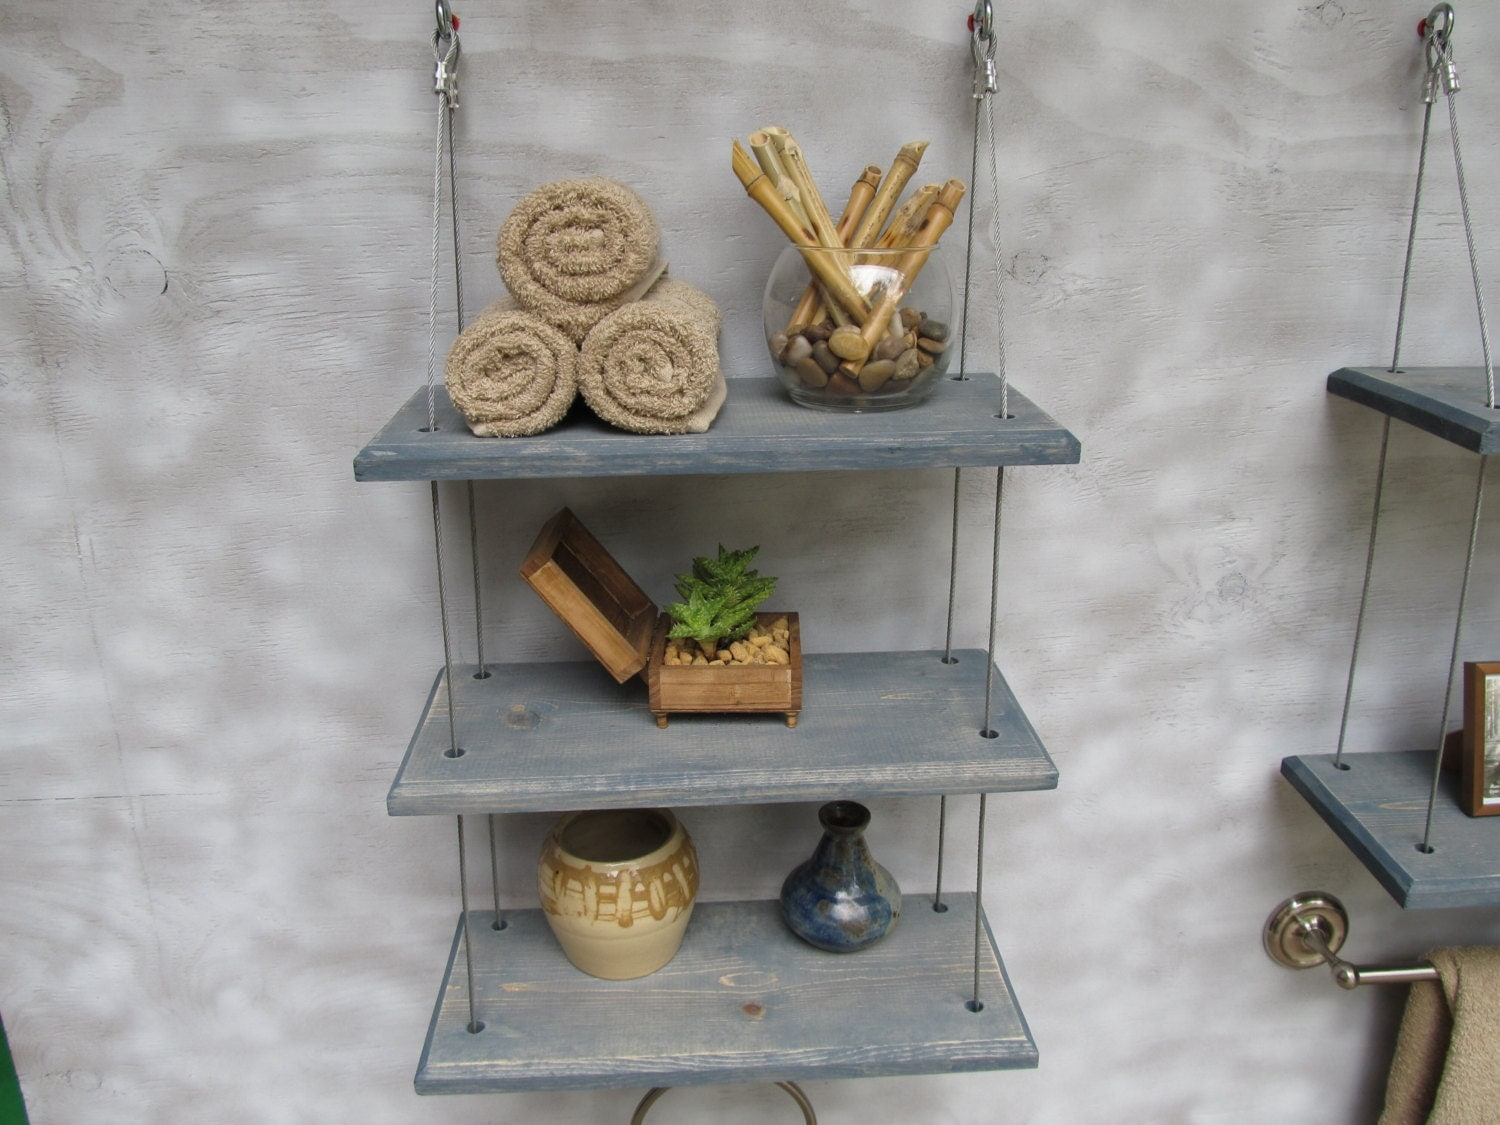 Decorative Wall Shelves For Bathroom : Bathroom shelves floating industrial